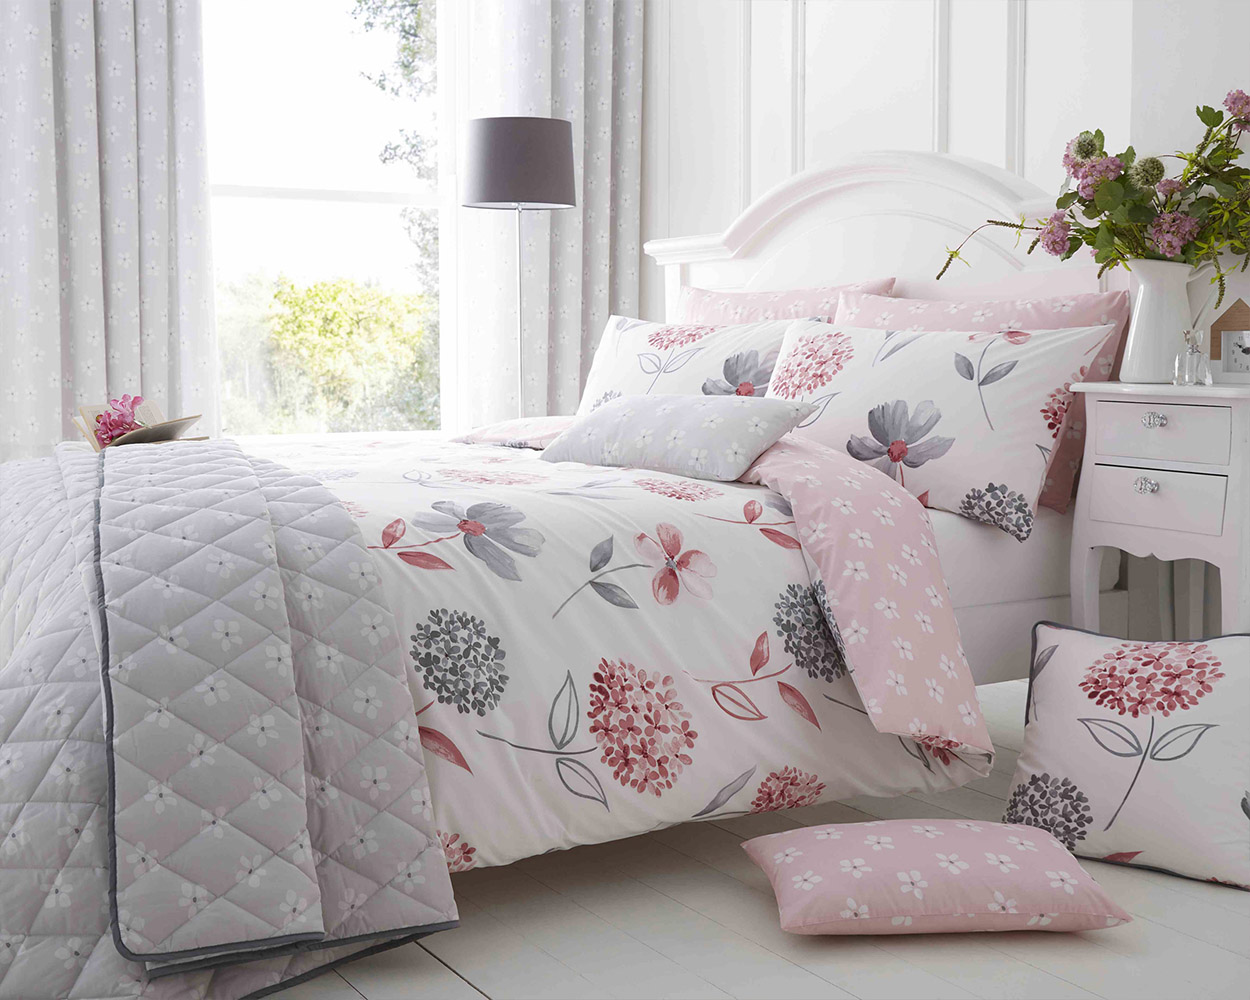 Cotton Rich Caroline Floral Design Duvet Set in Baby Pink and Light Grey